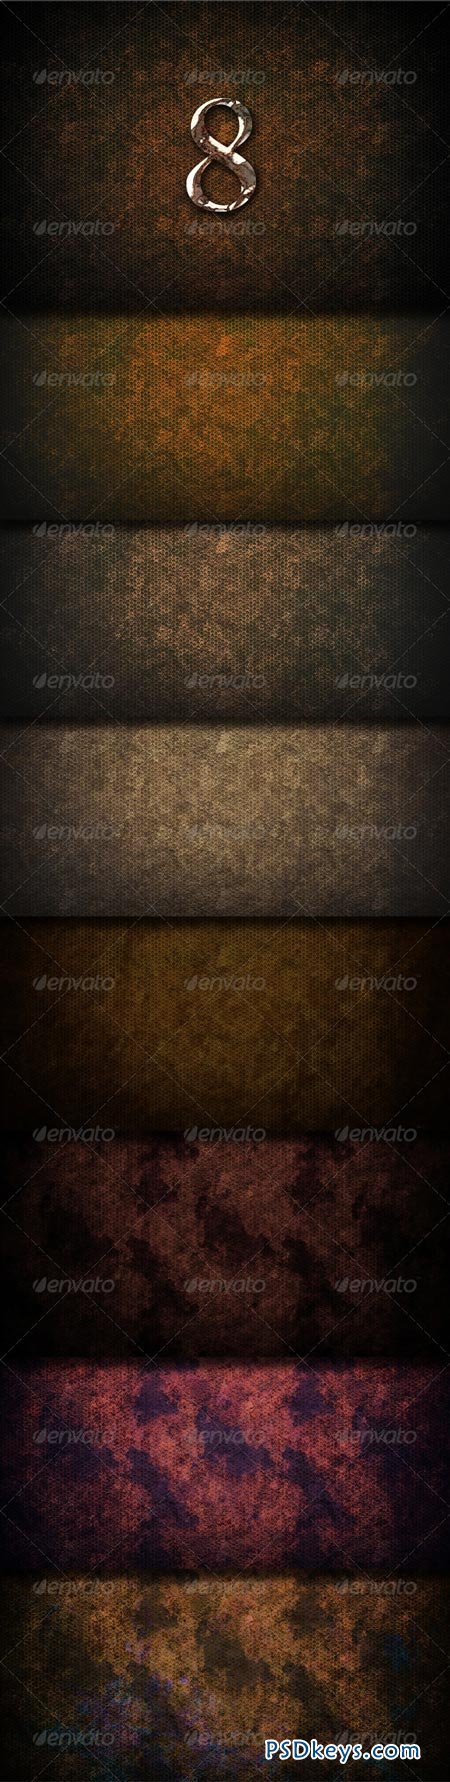 Carbon Grunge Texture Pack backgroud 162270